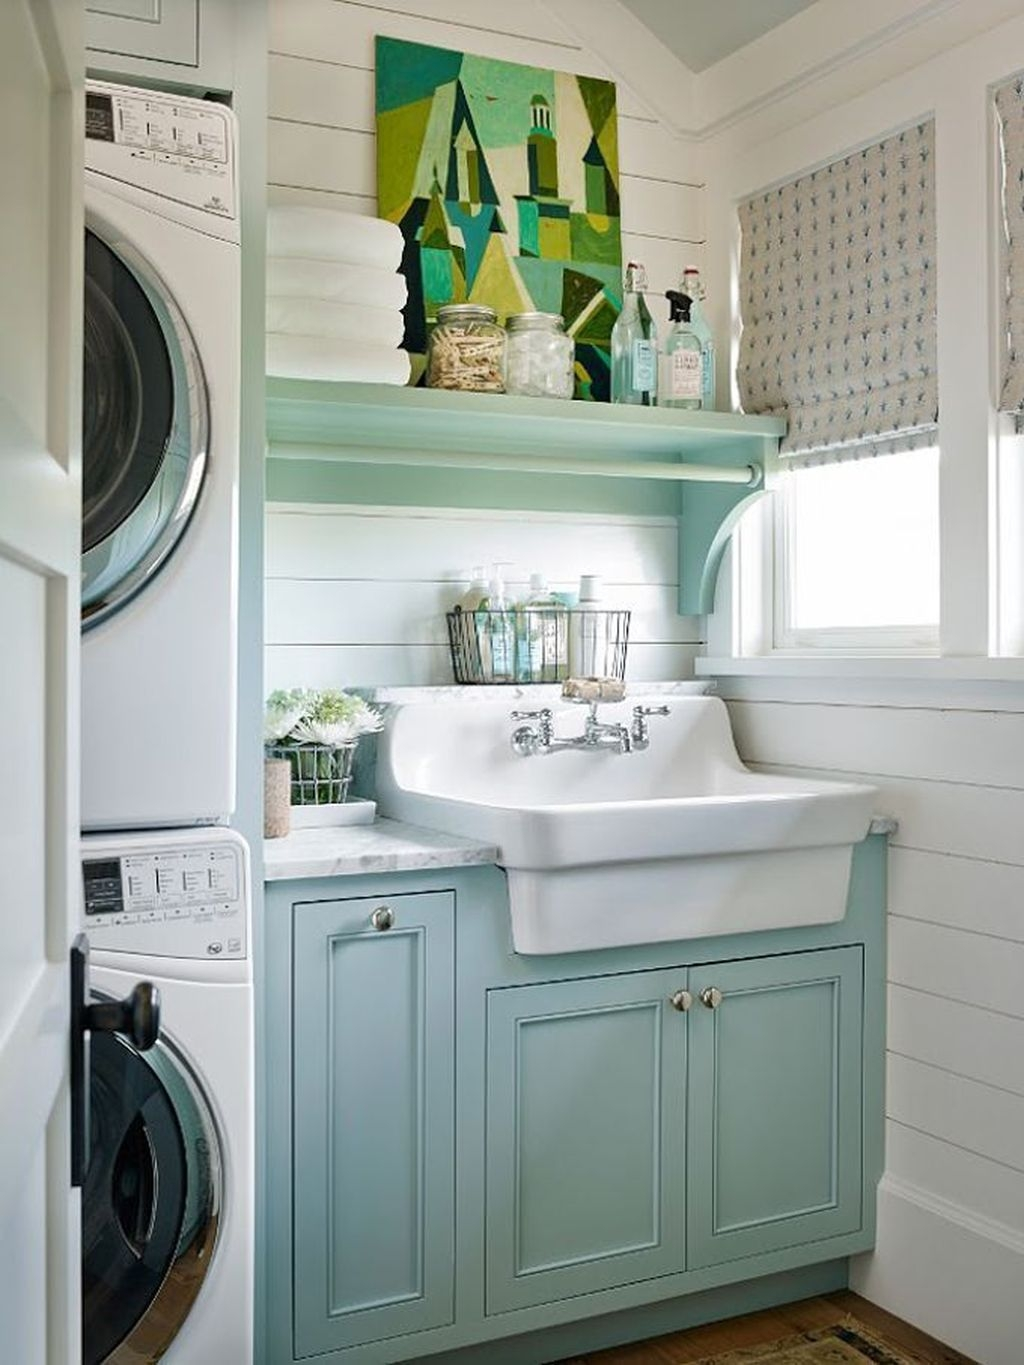 Totally Inspiring Small Functional Laundry Room Ideas 09